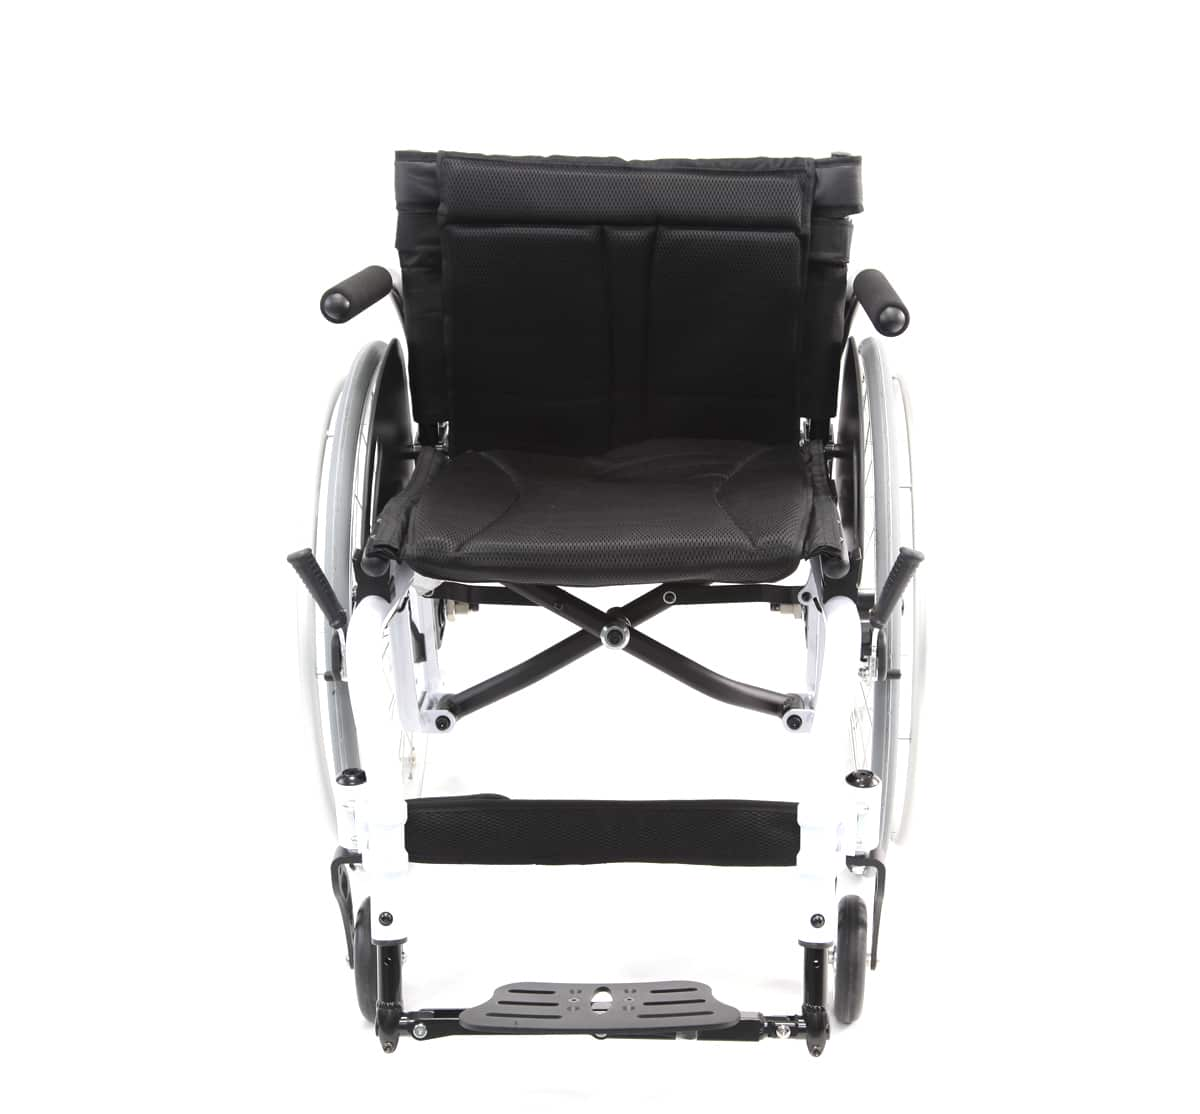 Karman S-ERGO ATX Active Wheelchair - Sports Wheelchair 15.4 lb frame